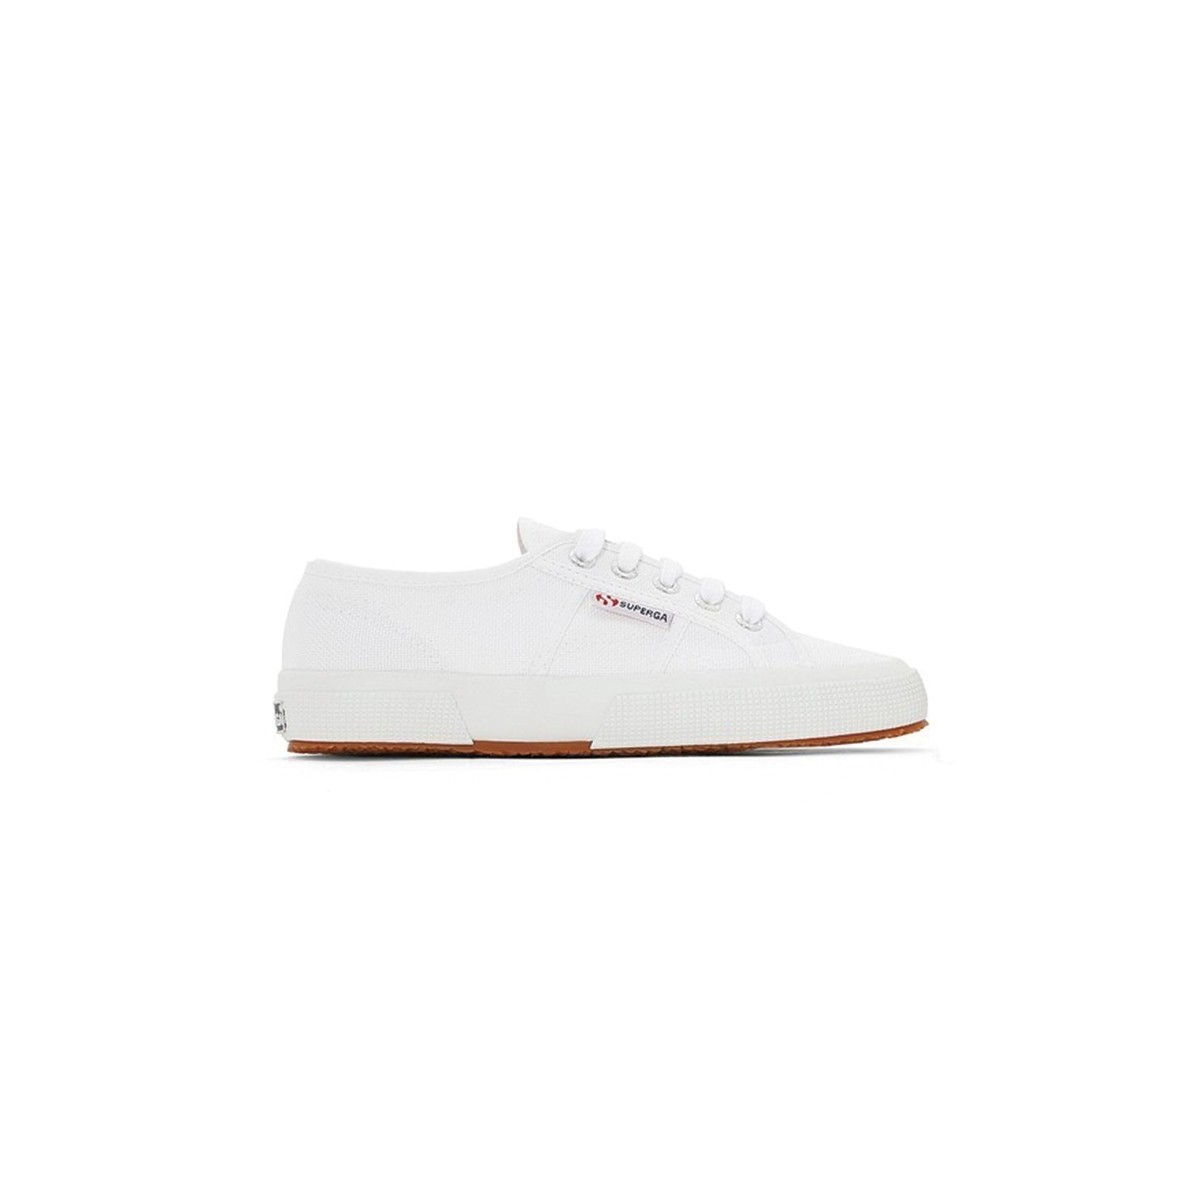 Tennis Superga lacets Toile blanc